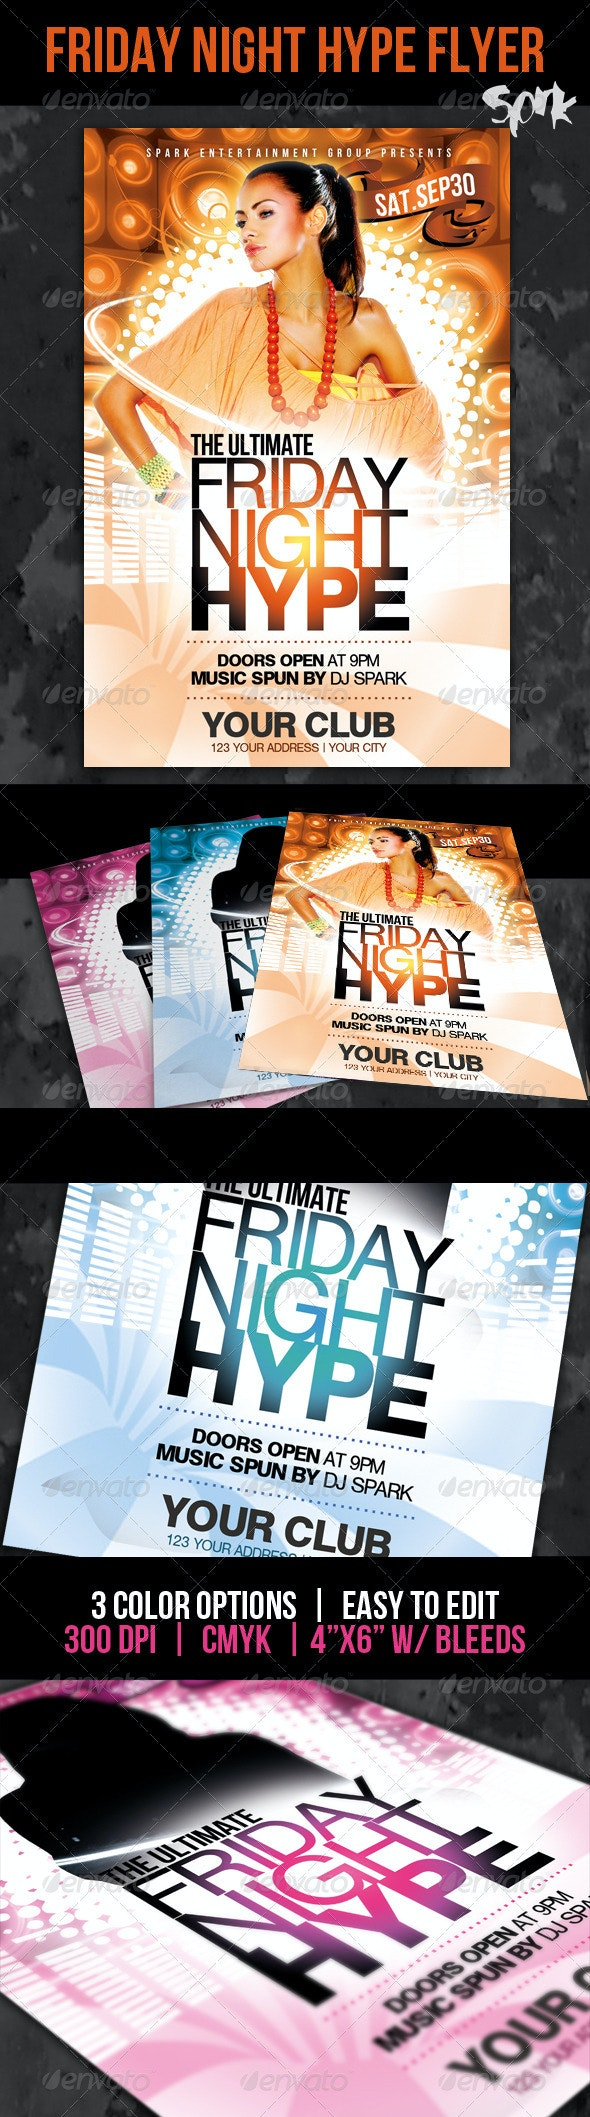 Night Hype Party Flyer Template - Clubs & Parties Events